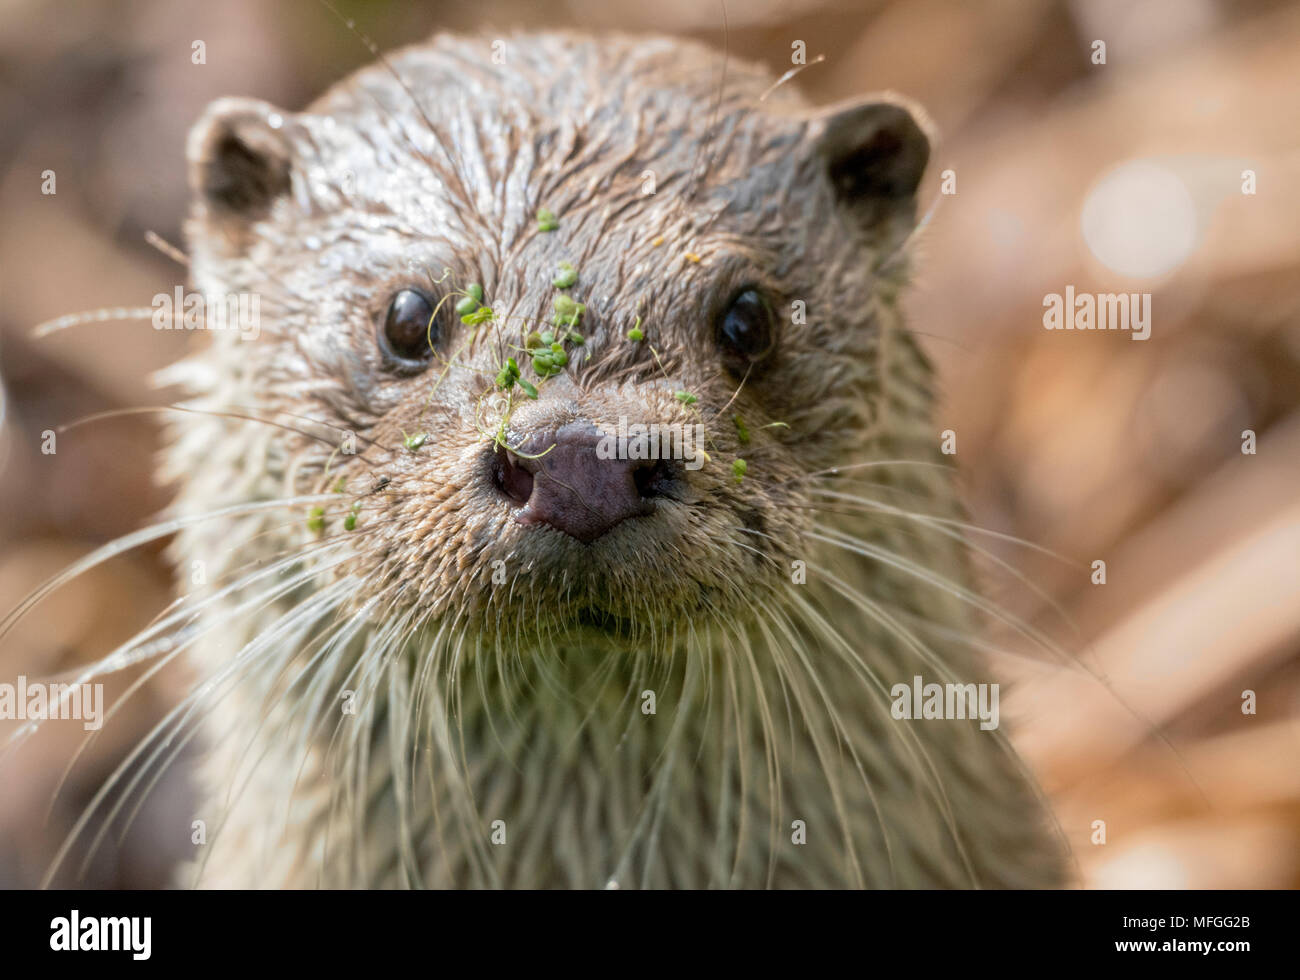 Curious otter staring straight into the camera - Stock Image